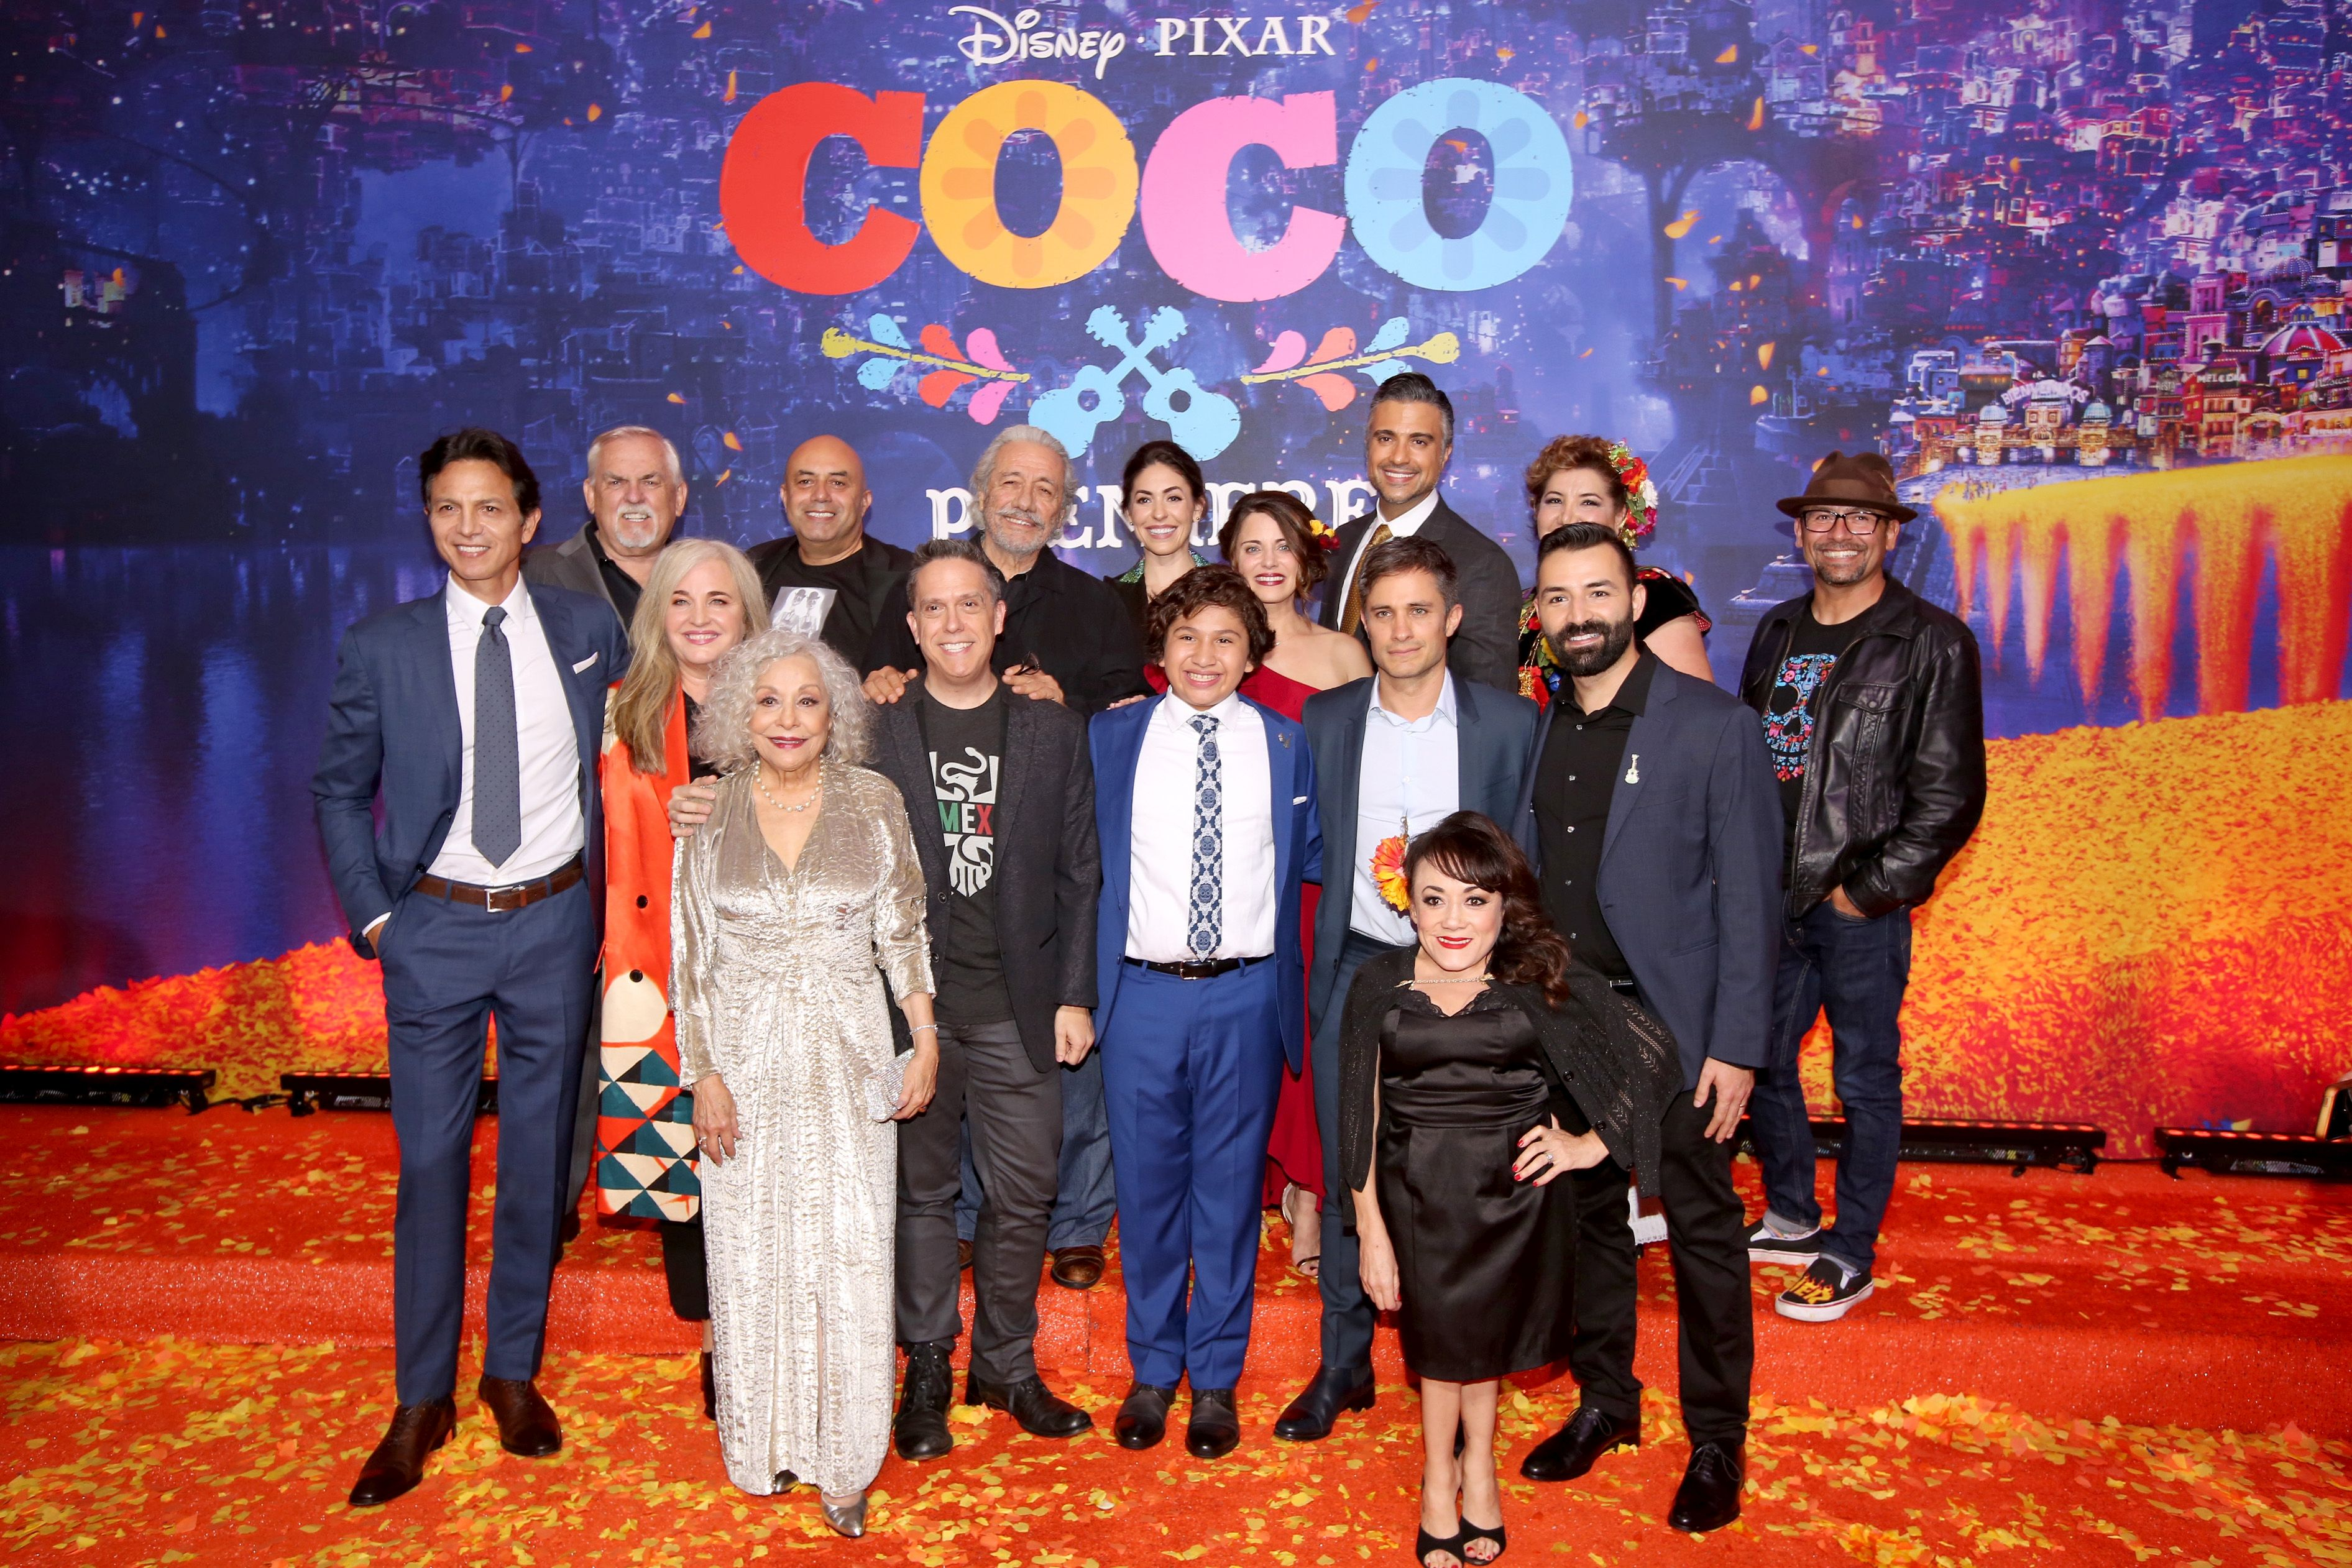 The Coco Premiere and my review of the movie!